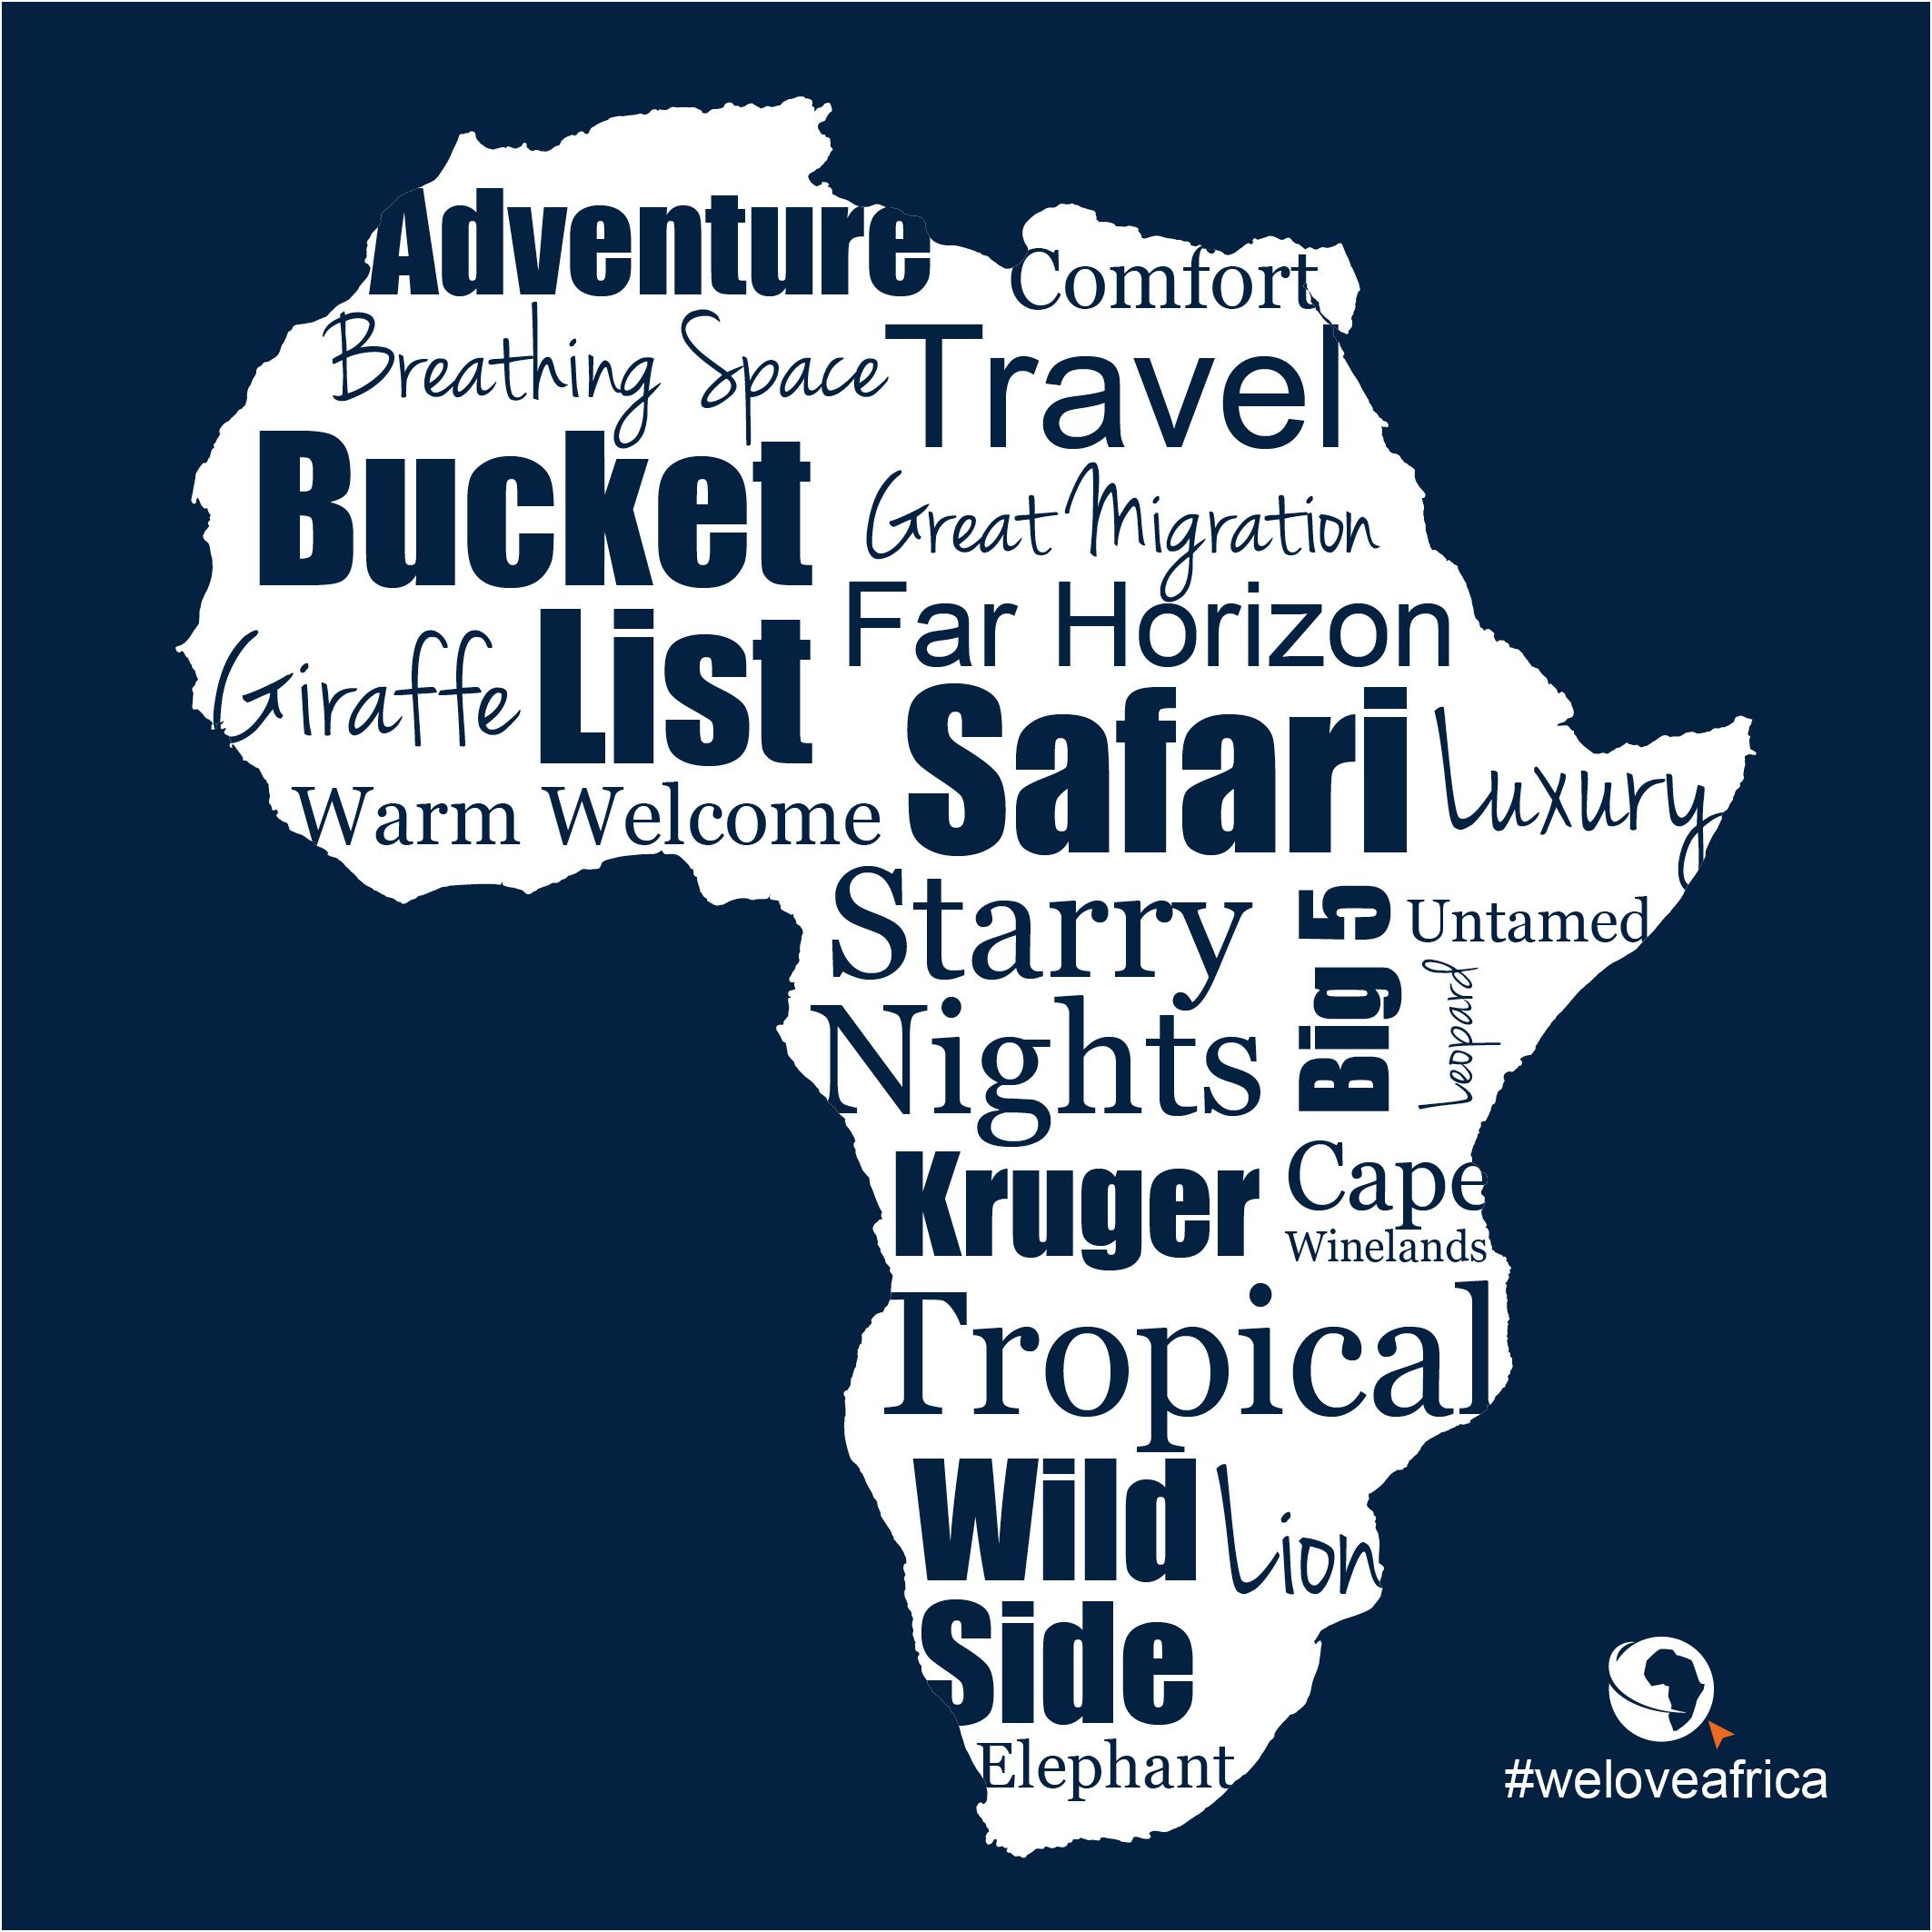 Words we love when describing our beautiful home #Africa. #WeLoveAfrica